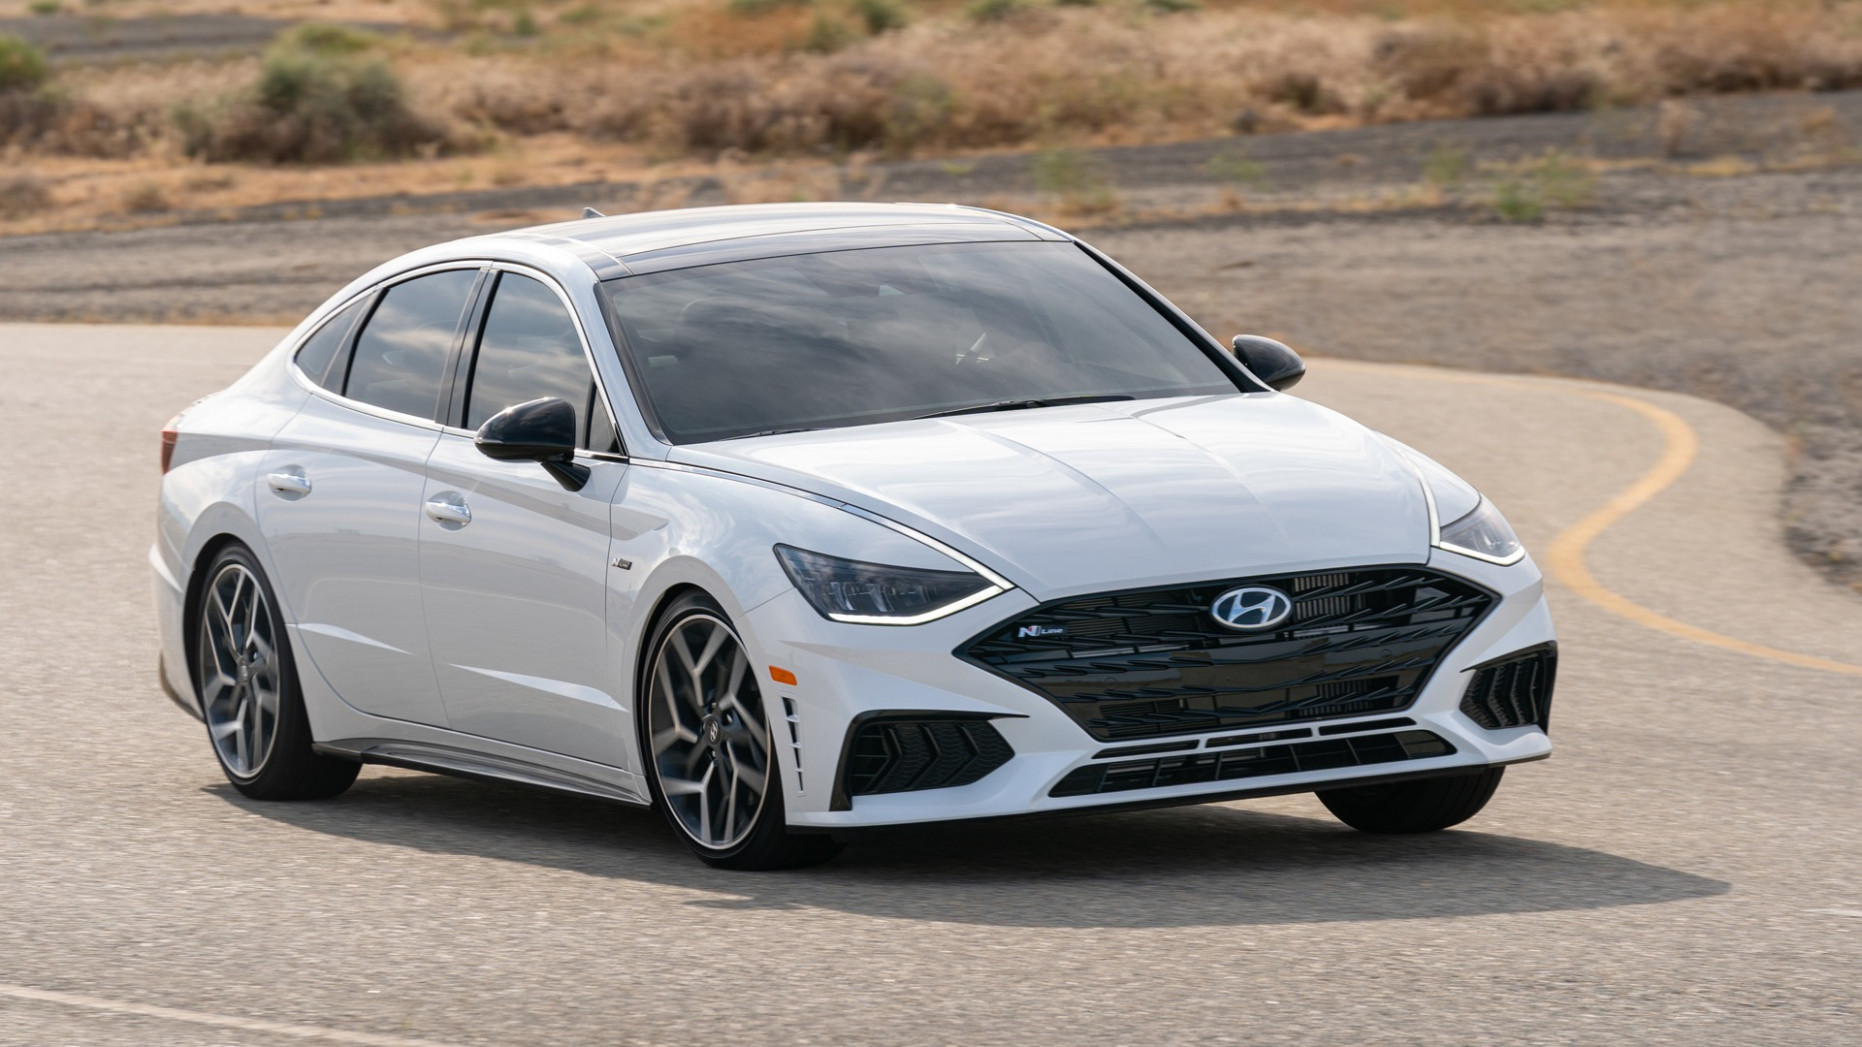 Price and Release date When Is The 2022 Hyundai Sonata Coming Out